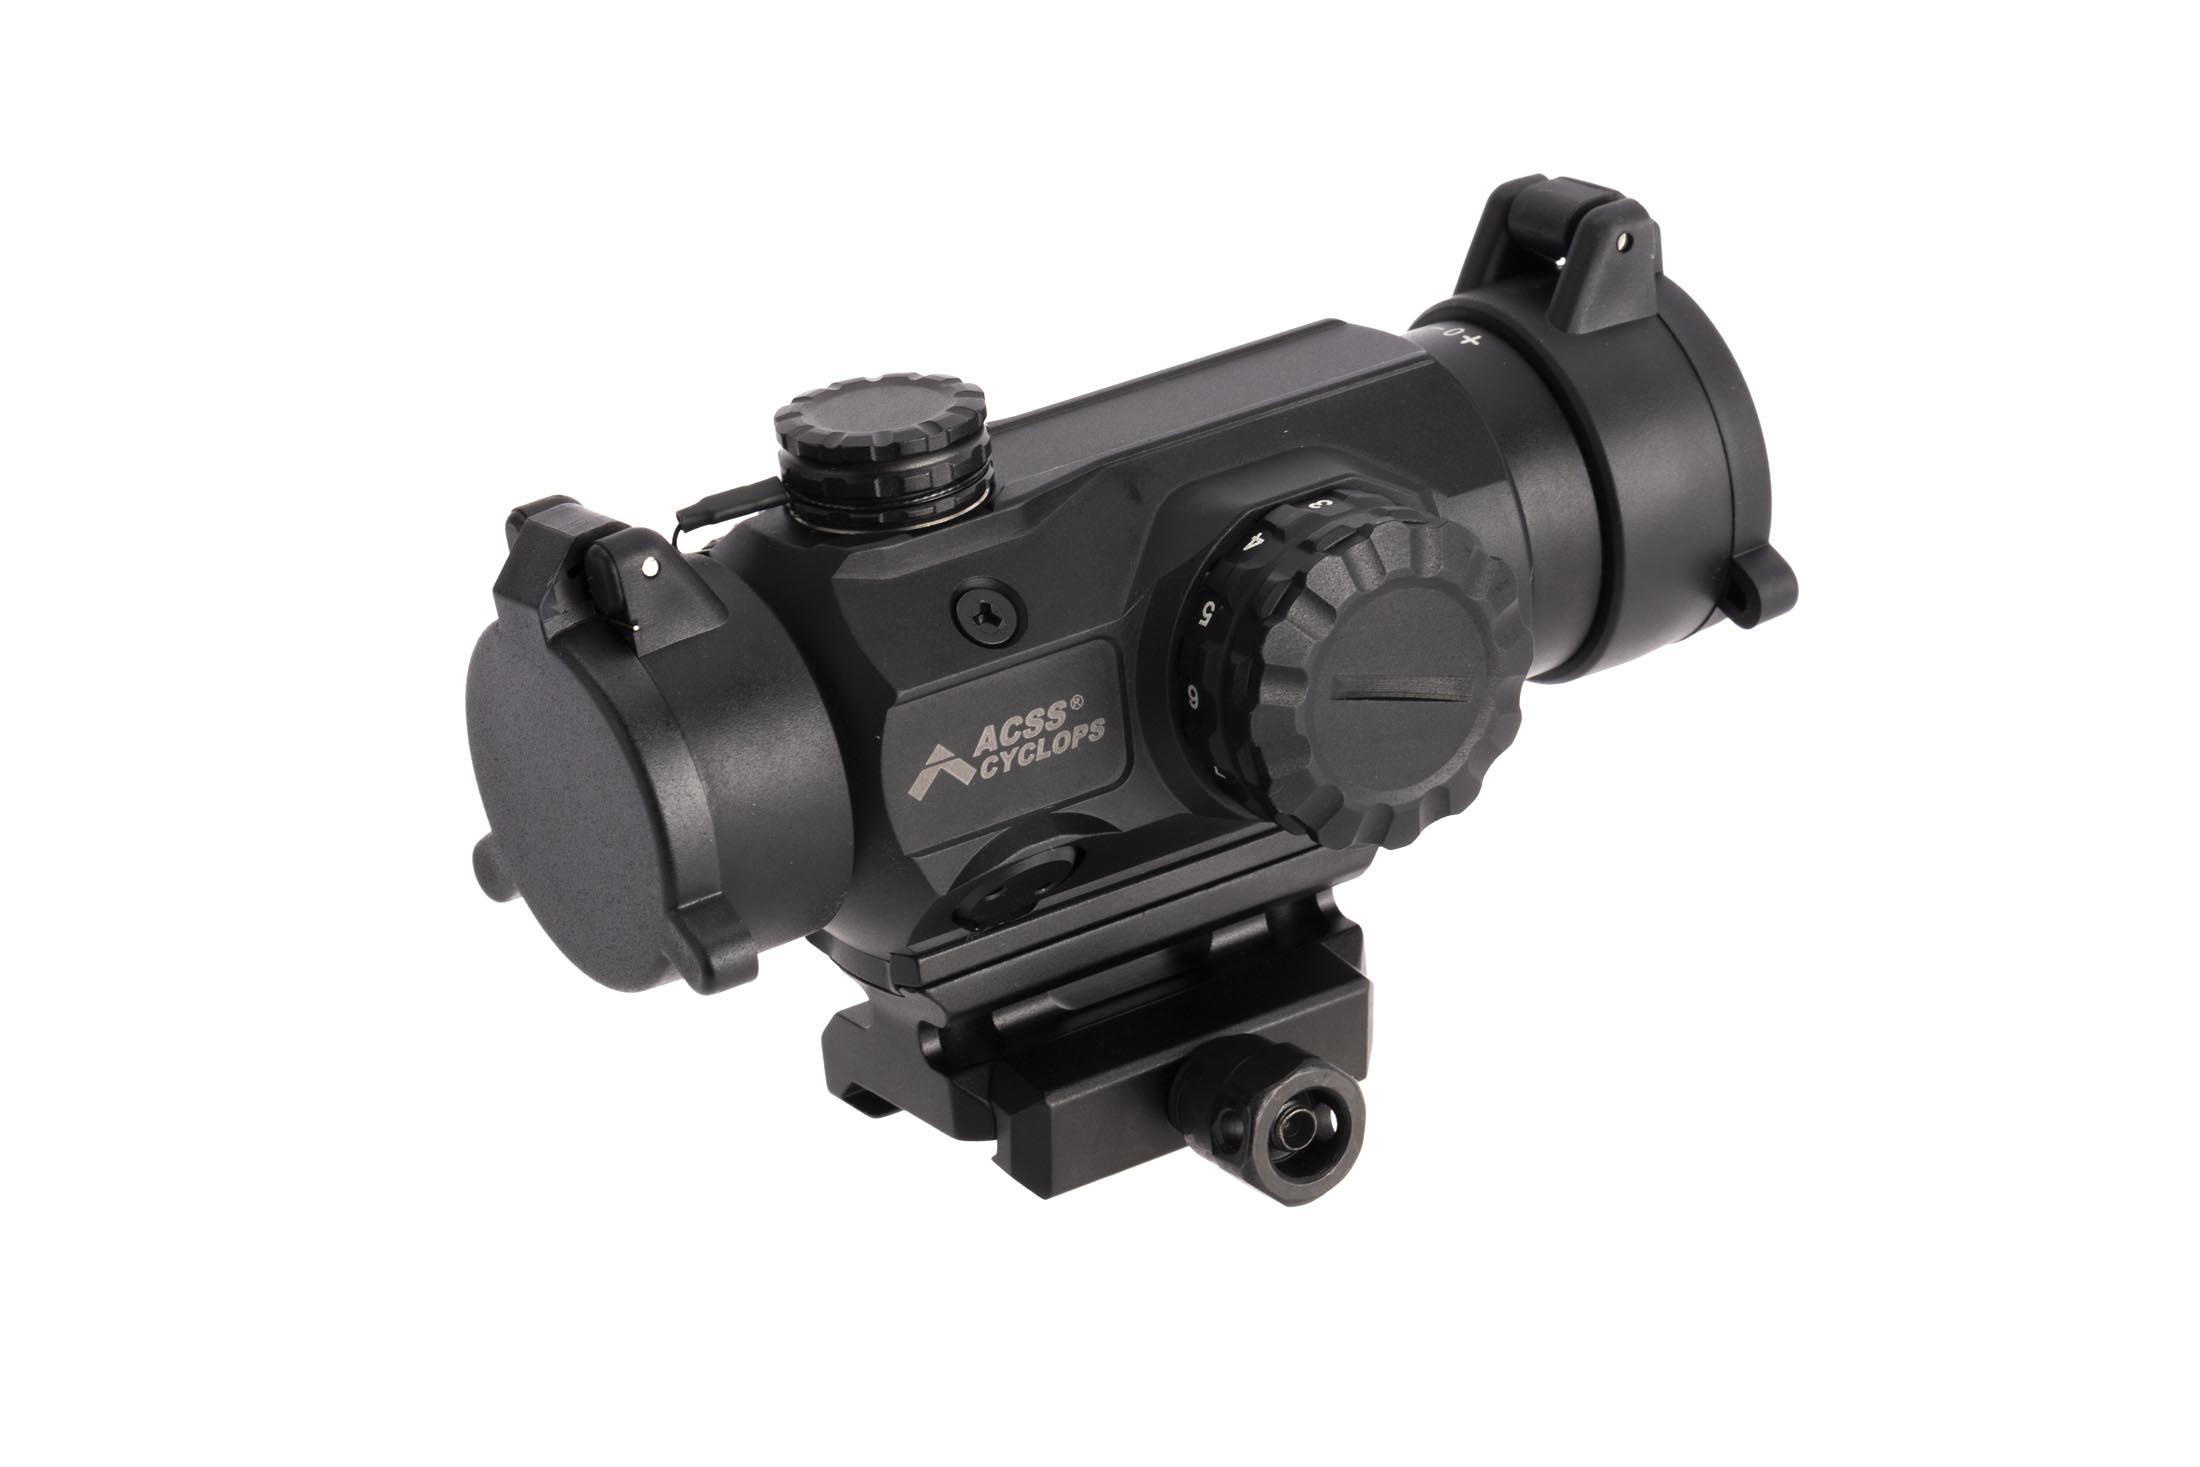 Primary Arms black anodized finish medium height 1x Prism scope spacer provides a 1.53 central height for absolute cowitness